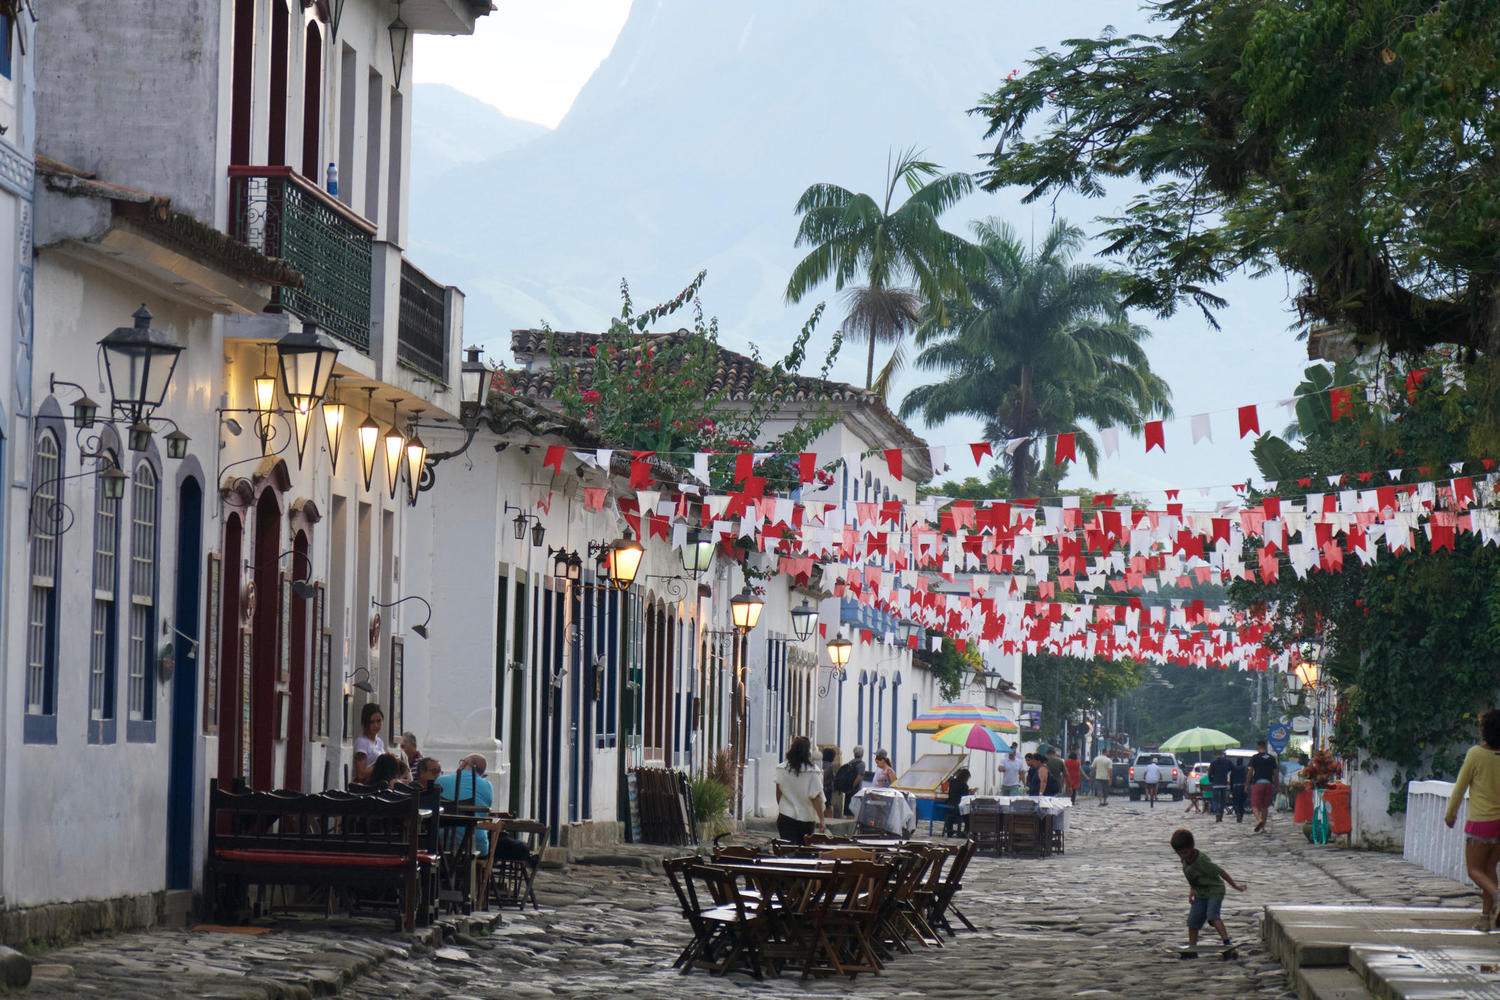 The colonial town centre of Paraty